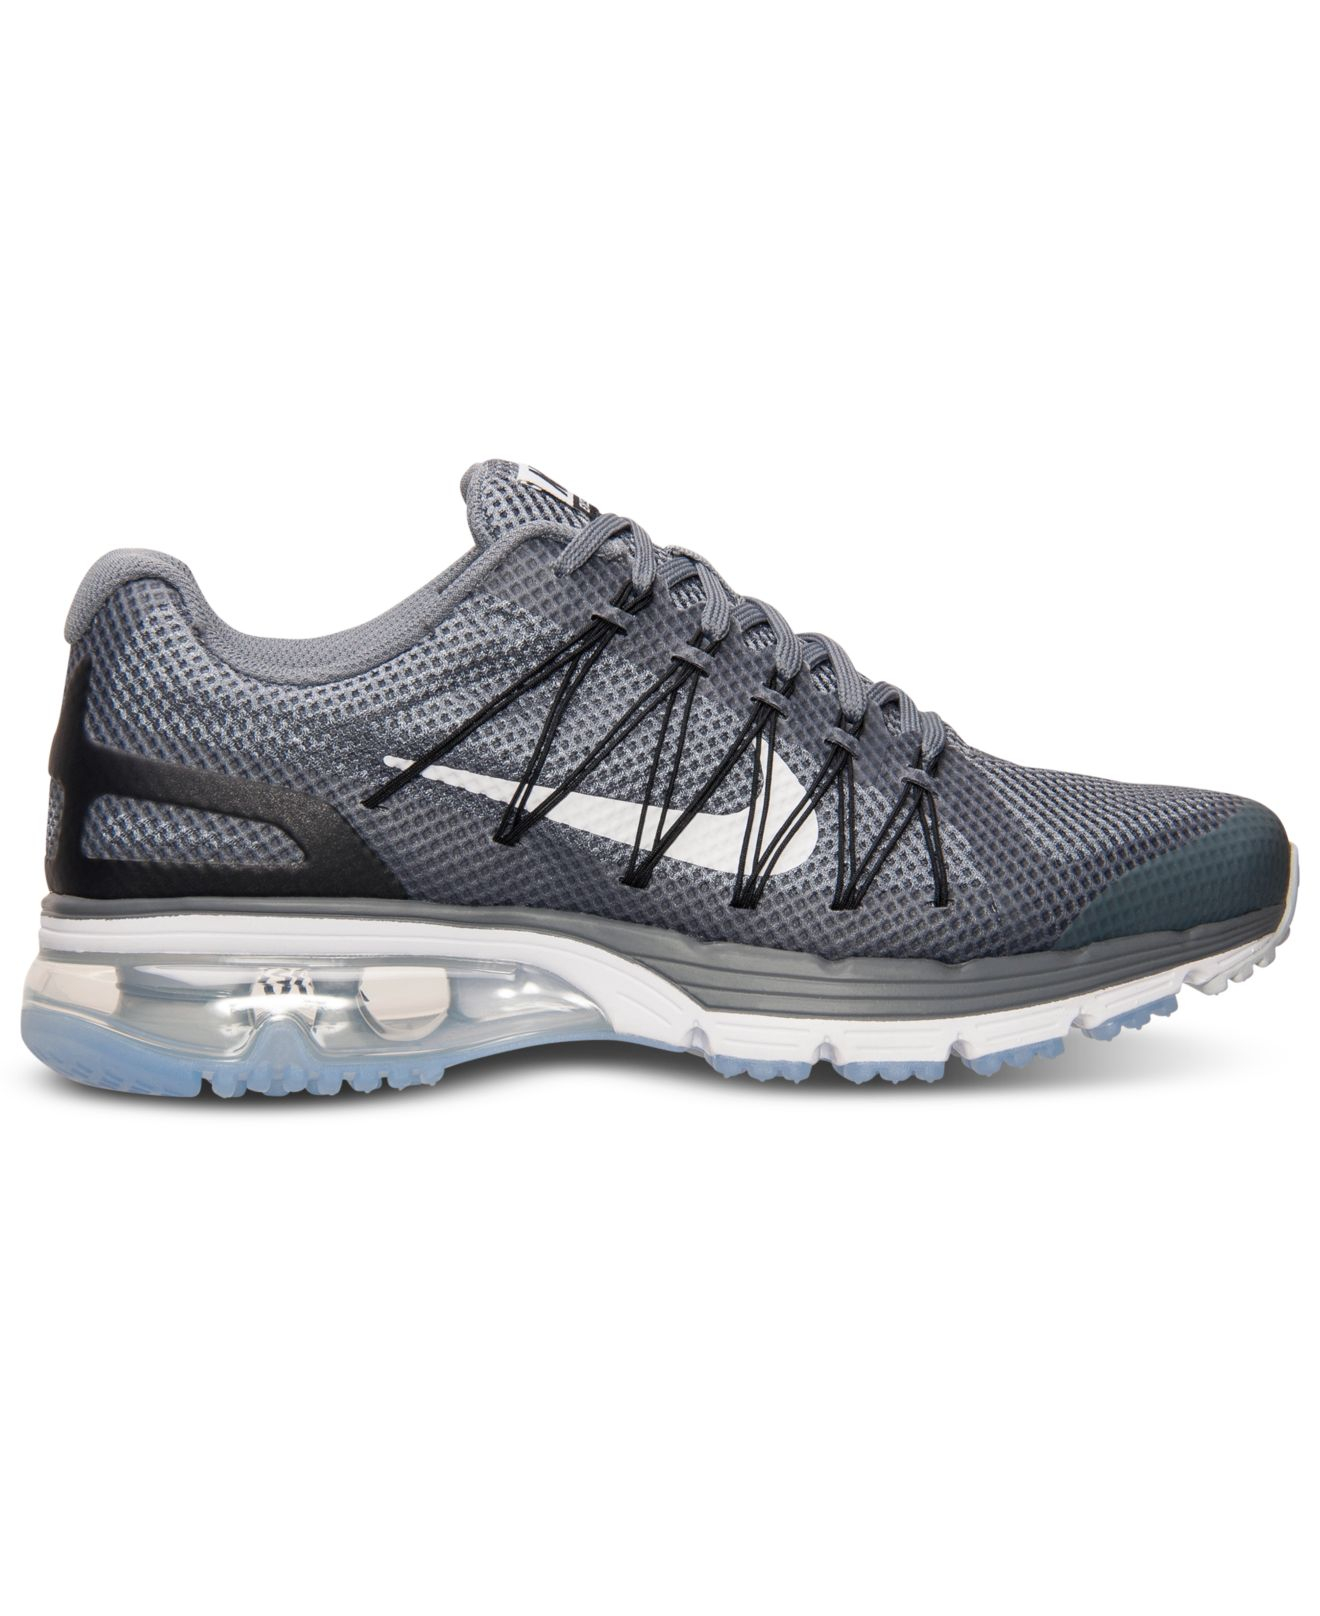 nike-cool-greywhiteblackpur-mens-air-max-excellerate-3-running-sneakers -from-finish-line-gray-product-1-487139529-normal.jpeg